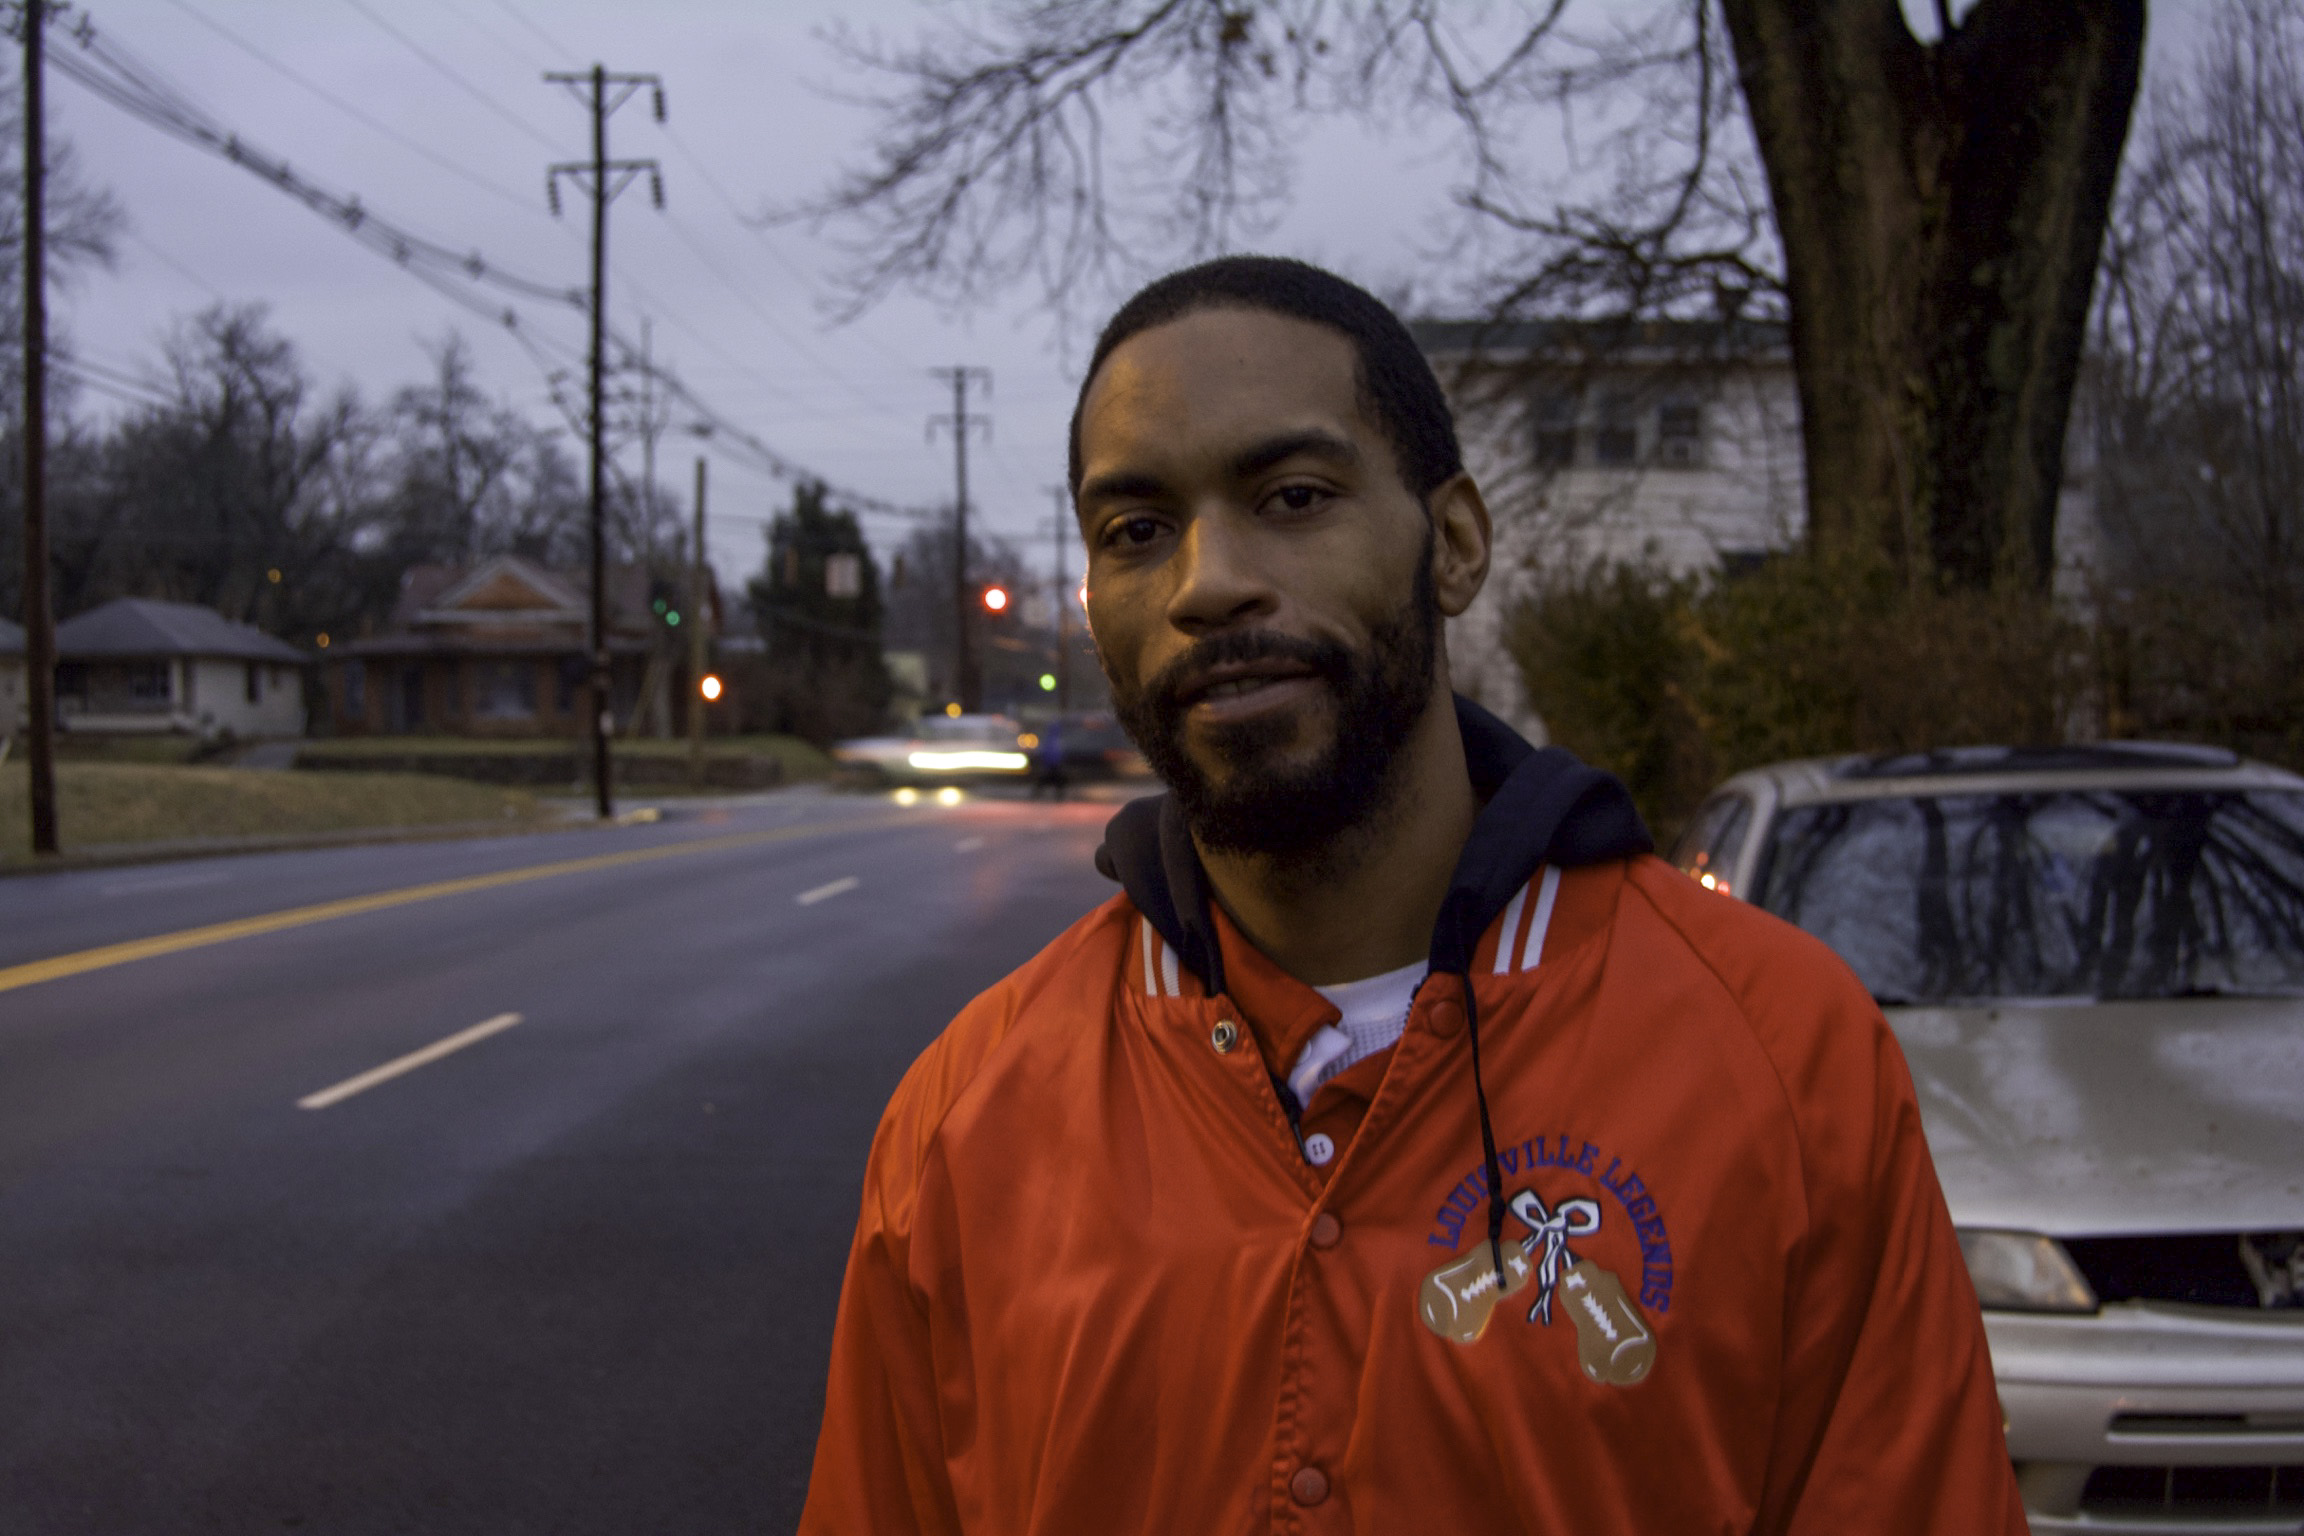 """""""I've been in the West End my whole life. I was born and raised here. We lived in California Square. When I was six or seven, we moved to 42nd. Yeah, I've been here my whole life.  Growing up in the West really ain't as bad as people think it is. It depends on the people that you involve yourself around and the people in your household. It's a lot deeper than just the streets. The streets don't turn people into monsters, people turn people into monsters. It's who they go look to find leadership in and who they feel like is giving them the most love at the time. It's deeper than just your surroundings and where you live at. I feel like it's the stuff on tv, the social media, the stuff that people are portraying is what's the best. It's making the youth turn into what they are. I feel like it's a lot of different outlets that people could use if they really care. People say that they care about a person but don't really feel the way that they say that they feel. They care more about what they could get out of the relationship instead of really helping a young person.  Ain't nothing wrong with the streets of the West. I don't feel like there's anything wrong. I've lived here my whole life. My mom loves the West End. She's been a respiratory therapist for twenty-something years. She's retired now and doing really well and she still lives in the West. She enjoys being around the people that she's around, not the streets.  I feel like they're changing the streets but they're not changing the streets. Just cause they're putting down new pavement and putting up a YMCA, it's not really going to be for the youth of the West End, you know, the people that they make look bad on the news. I feel like the government is putting everybody, that they feel like is a problem, in a certain situation anyway. If a person needs help, they're going to put them around a lot of people, who also need help, which makes a lot of bad shit happen. Even with the projects, they put people who needs"""